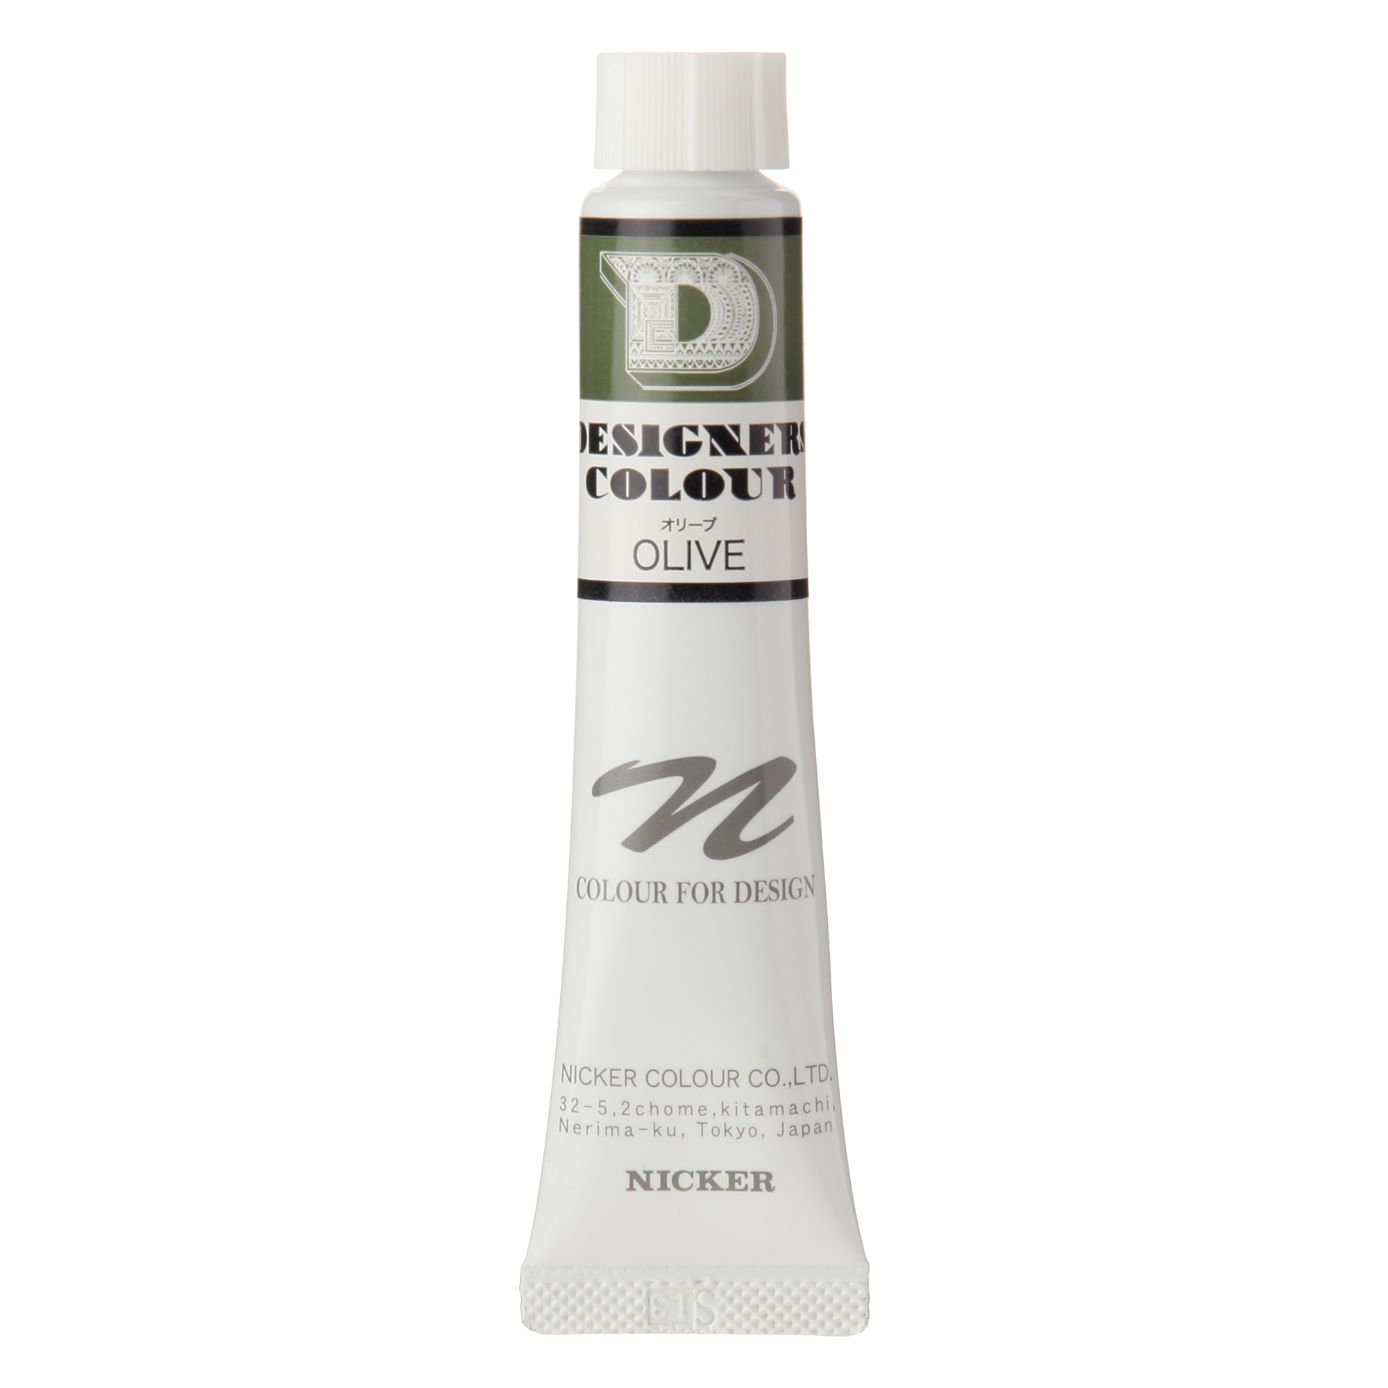 DESIGNERS COLOUR 20ml 591 OLIVE